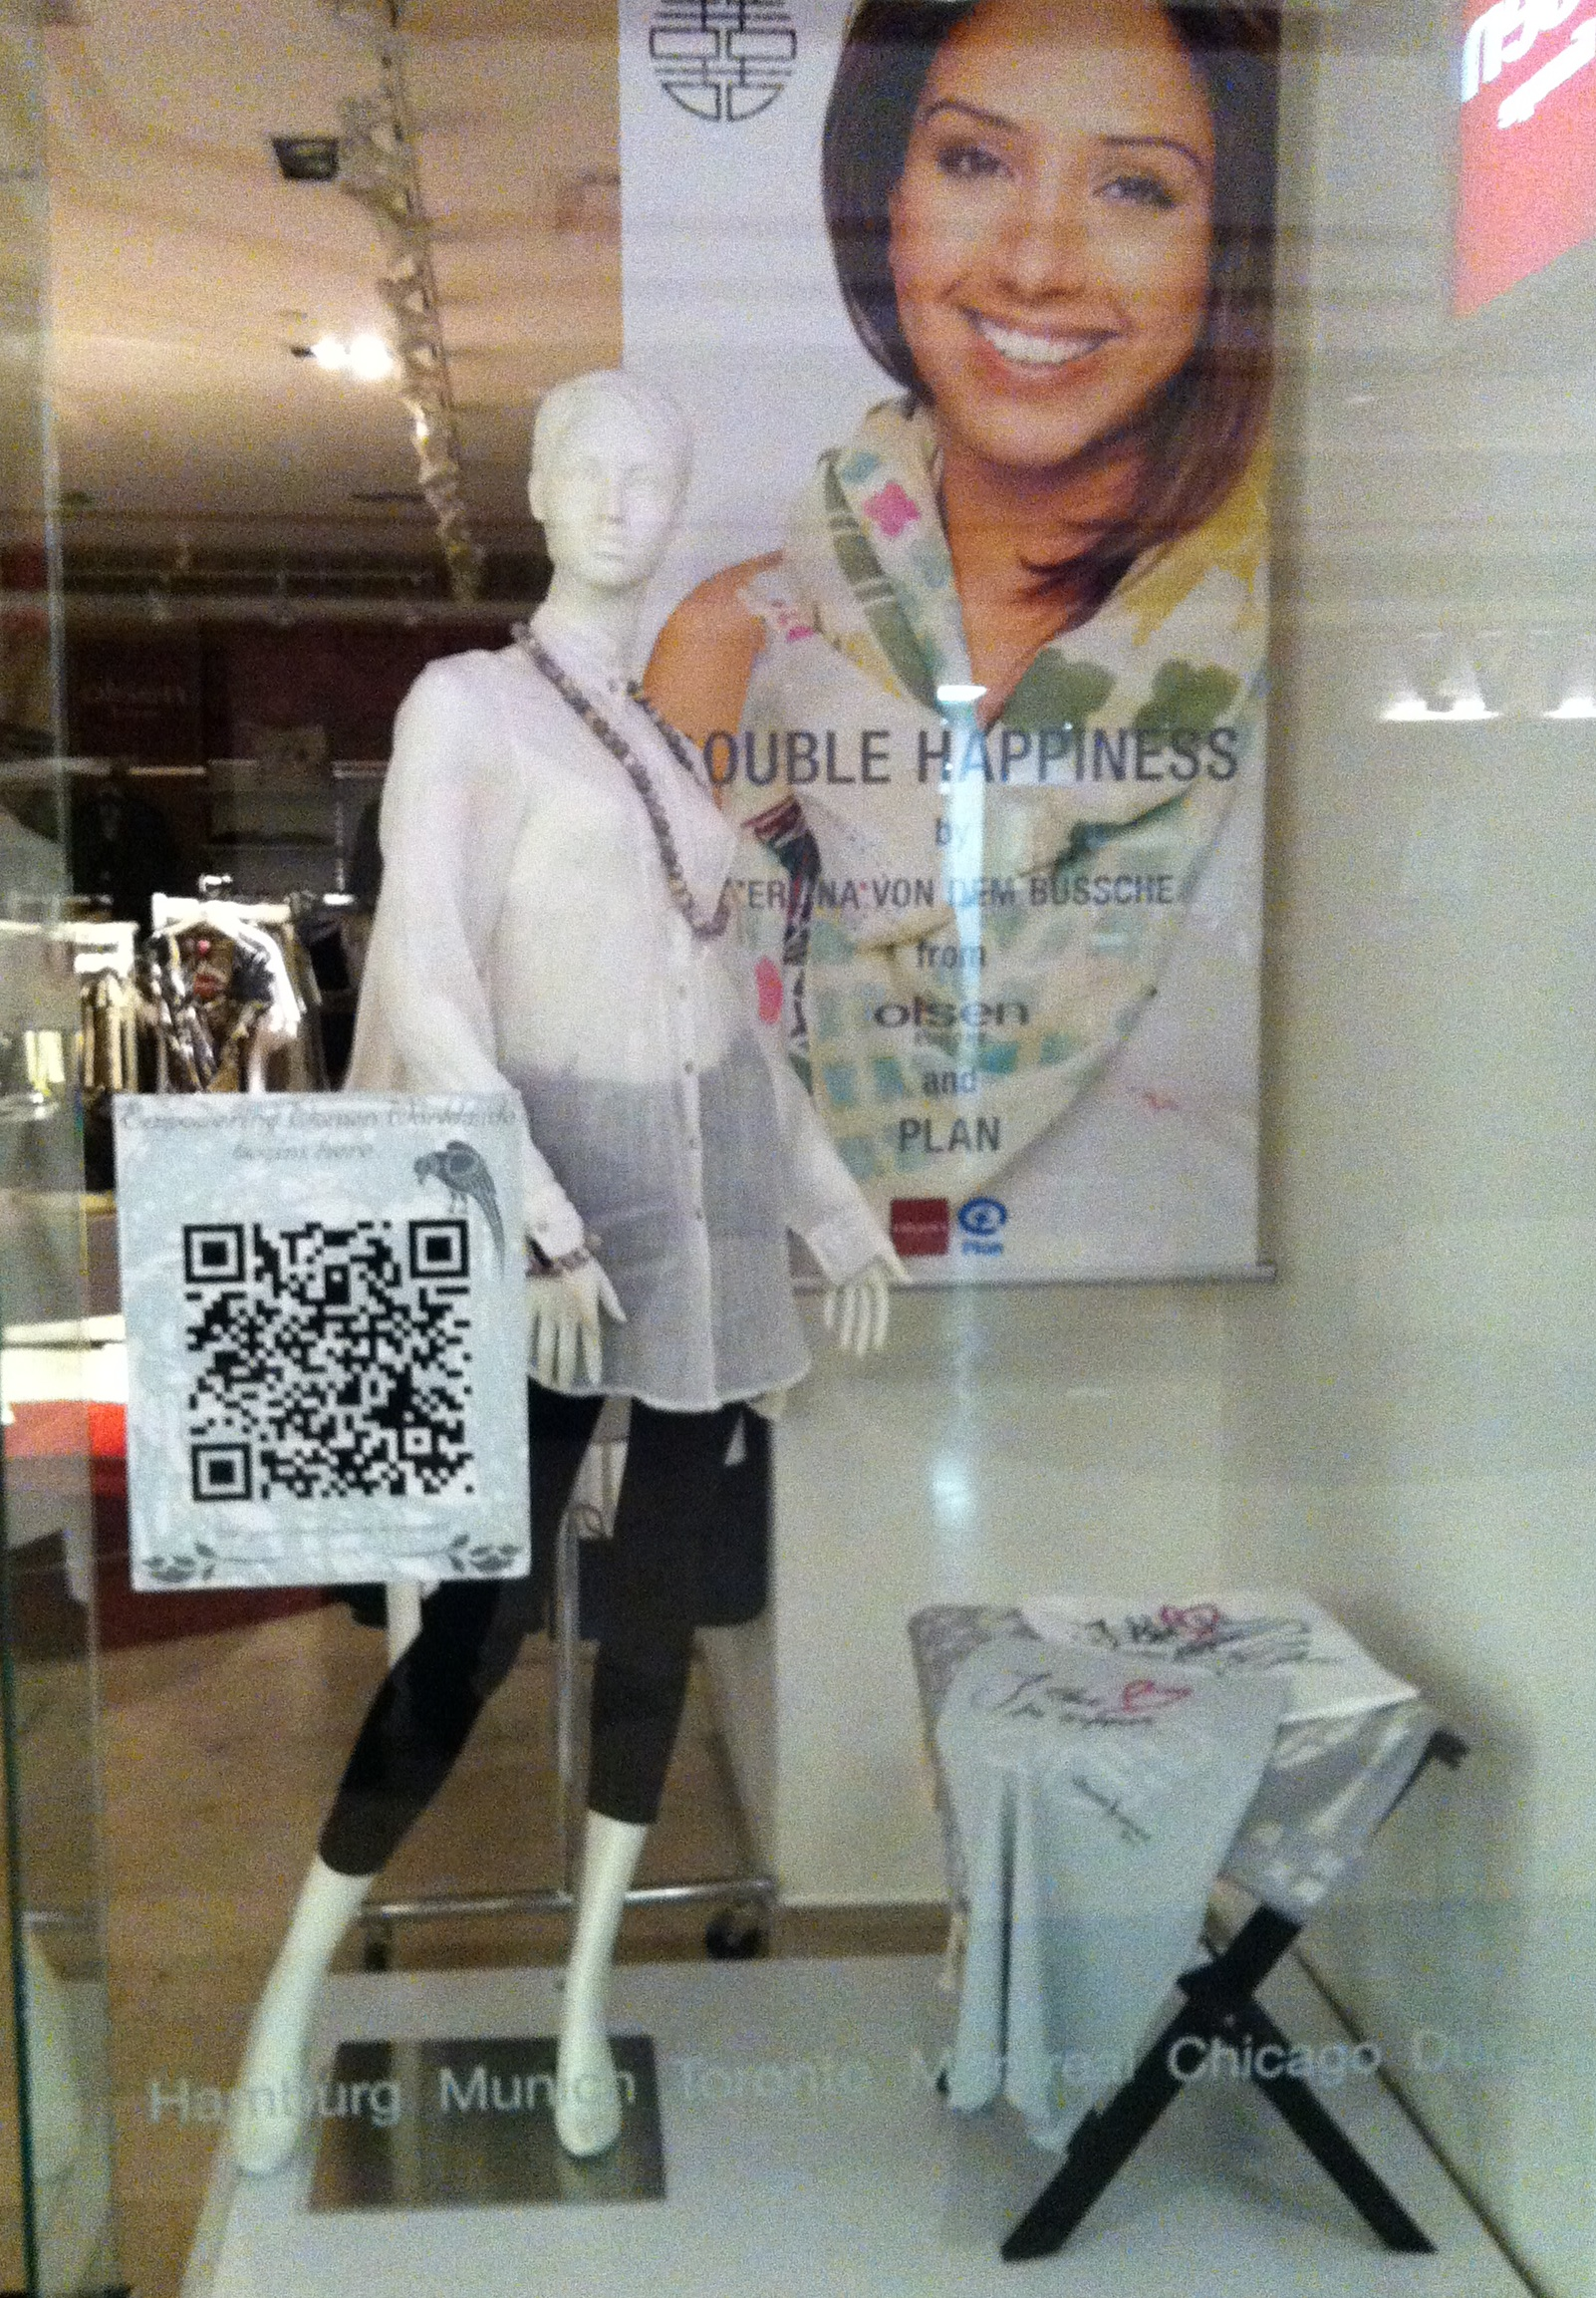 QR Codes Are Yesterday's News (unless You Are A Marketer)